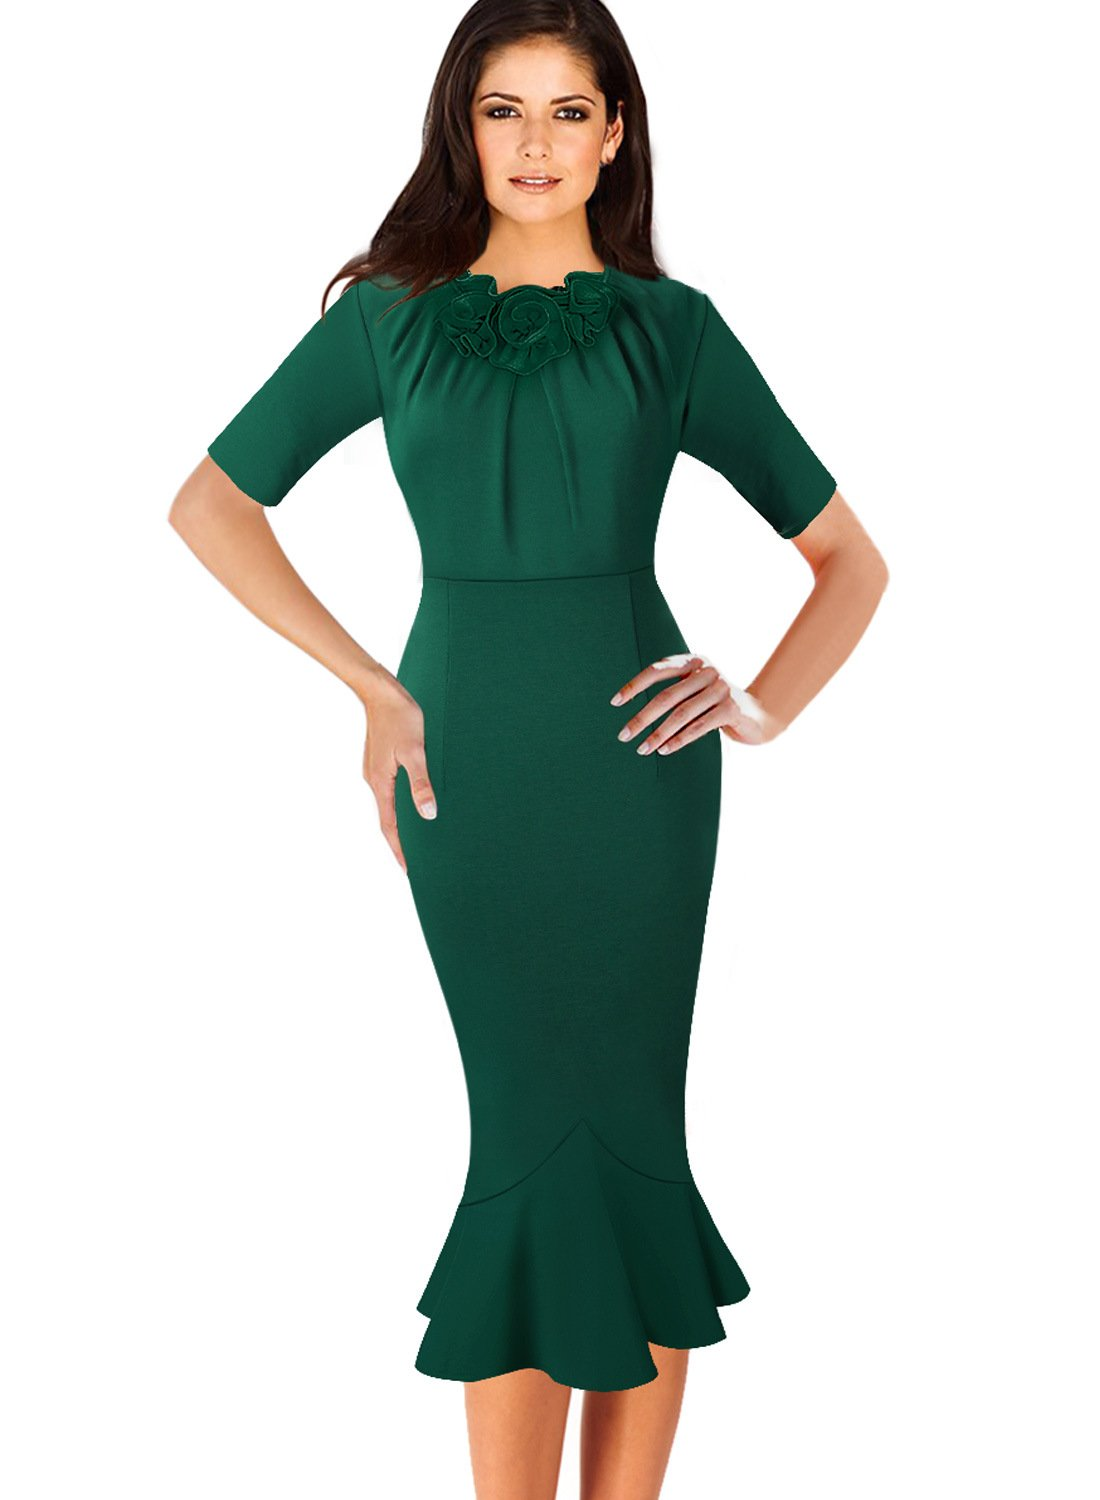 VfEmage Womens Elegant Vintage Cocktail Party Mermaid Midi Mid-Calf Dress 8923 GRN 16 by VfEmage